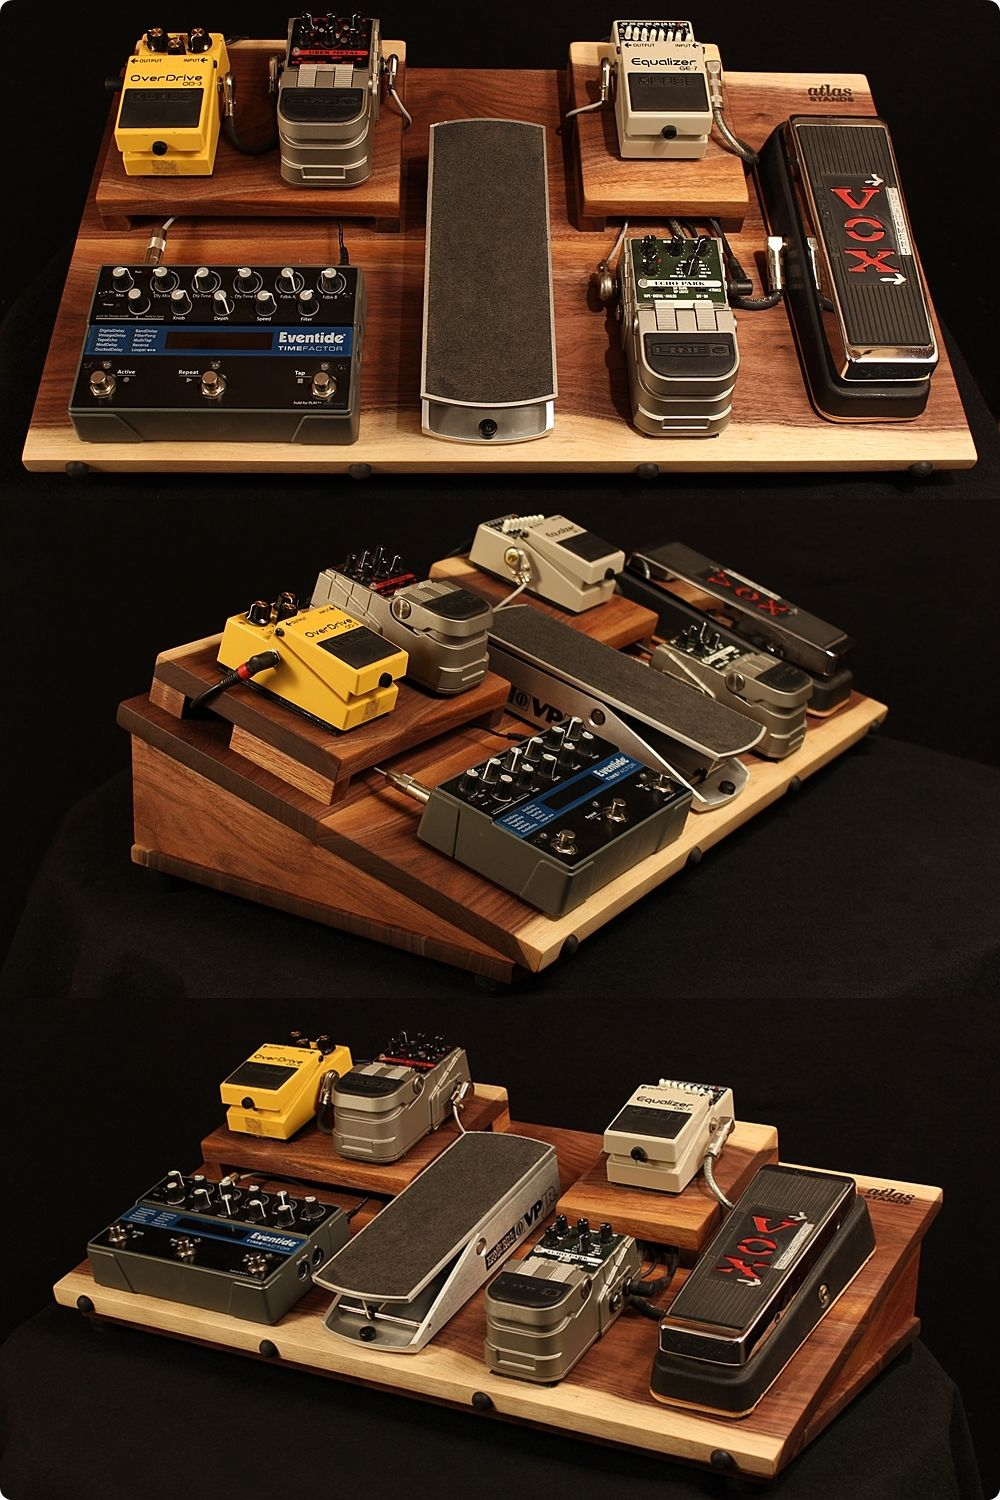 walnut guitar effects pedal board powered shielded with an on off switch clean wiring too. Black Bedroom Furniture Sets. Home Design Ideas